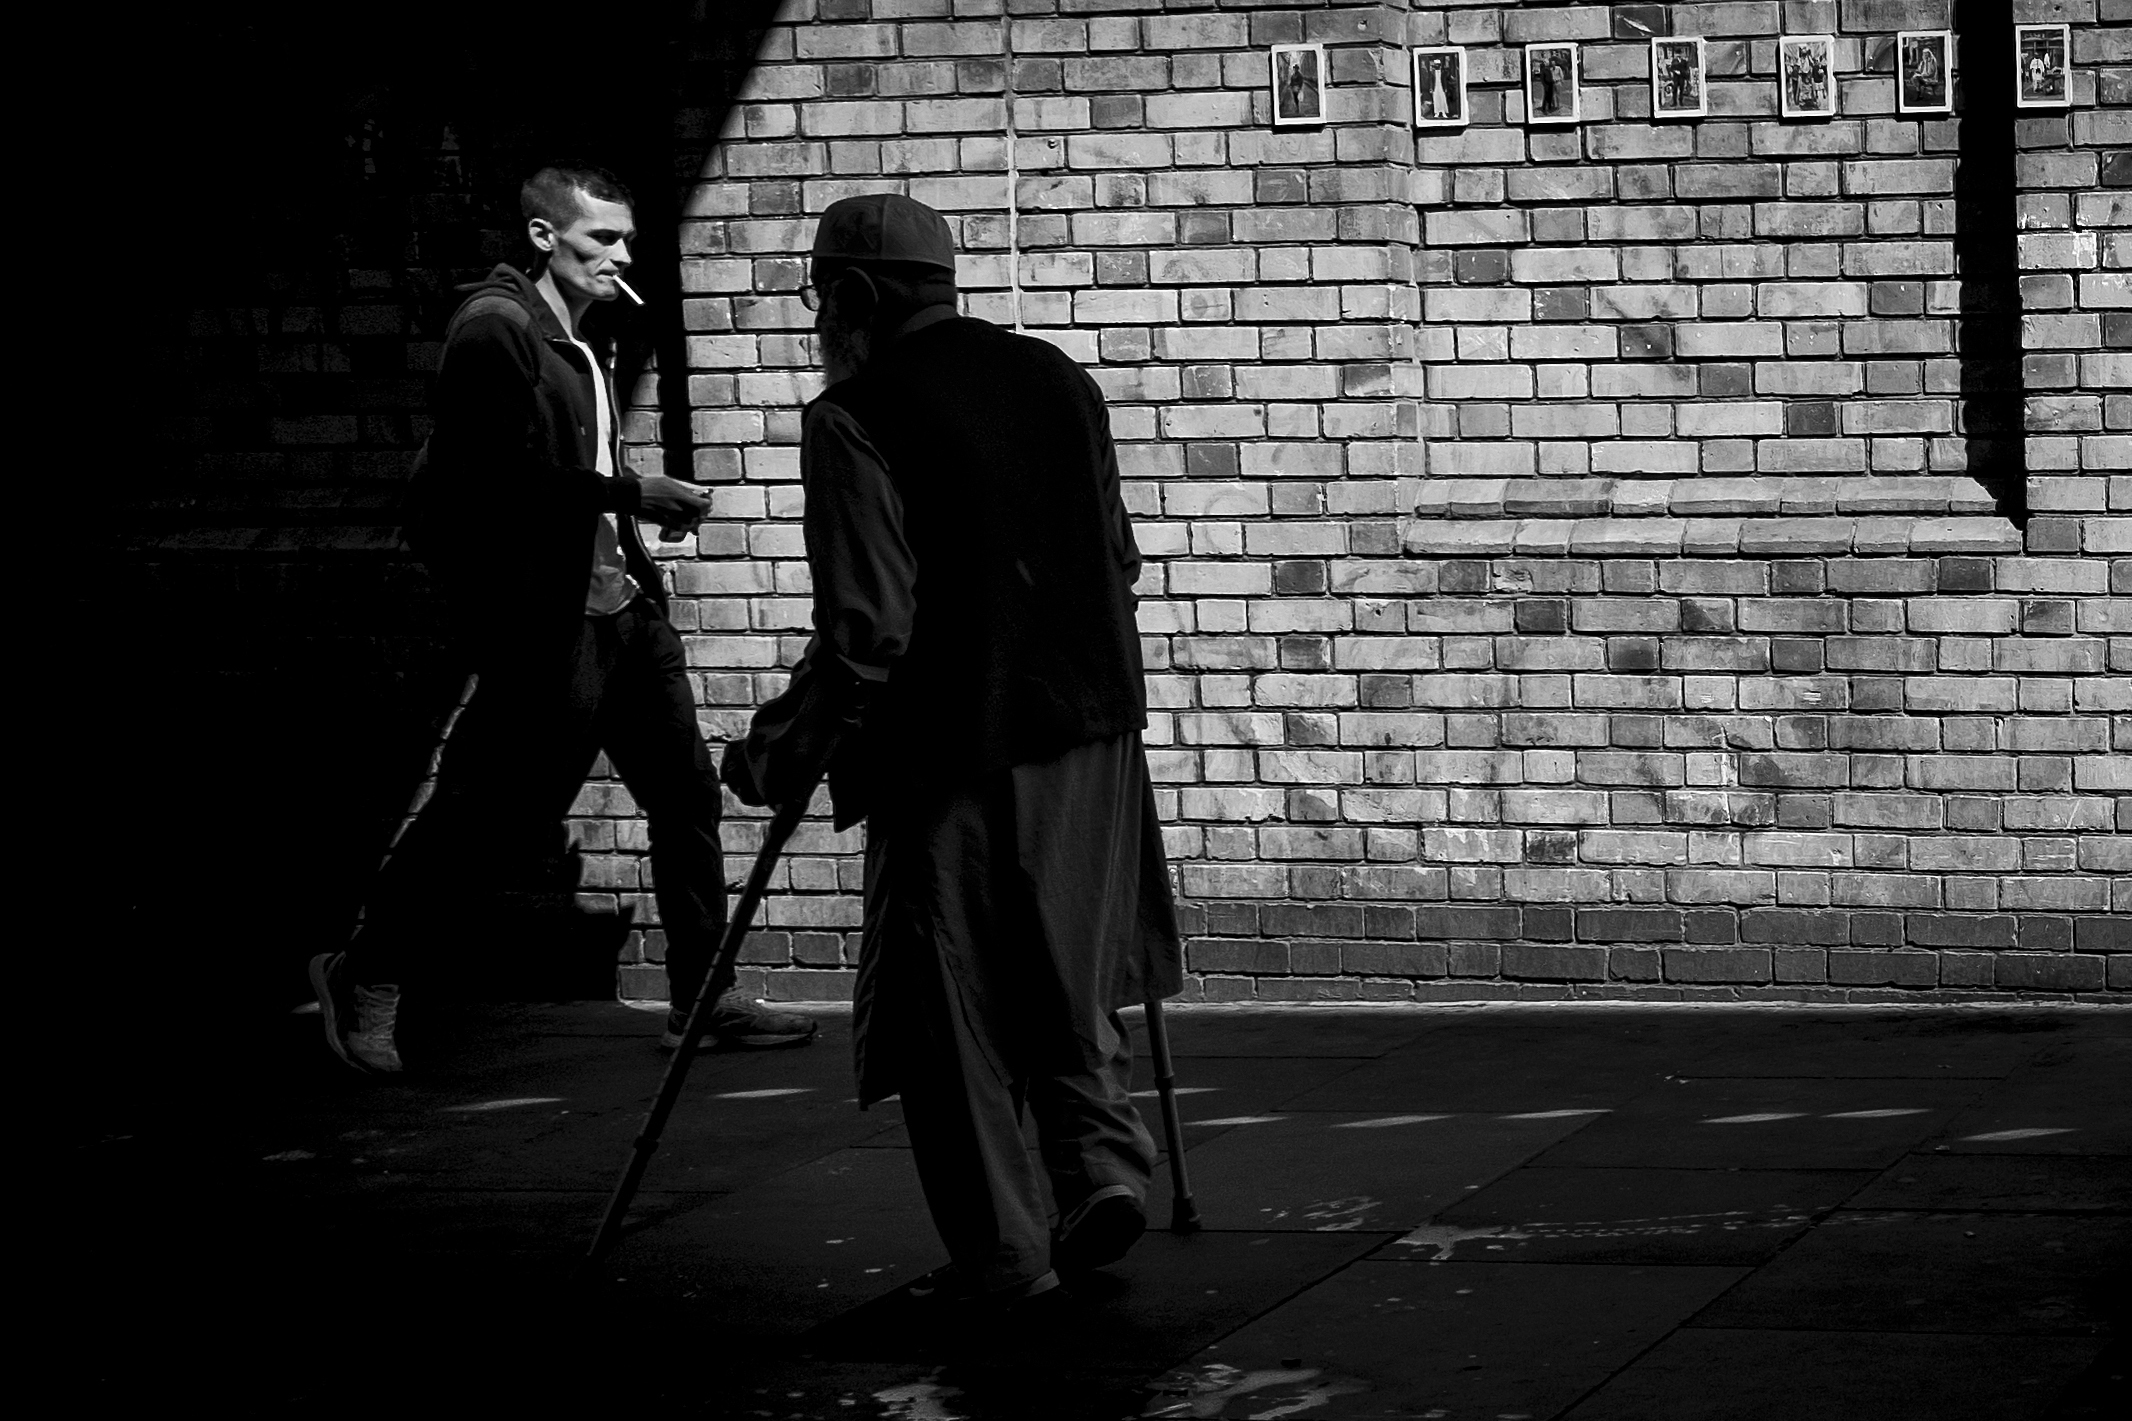 Street-photography-workshop-UK-0099.jpg